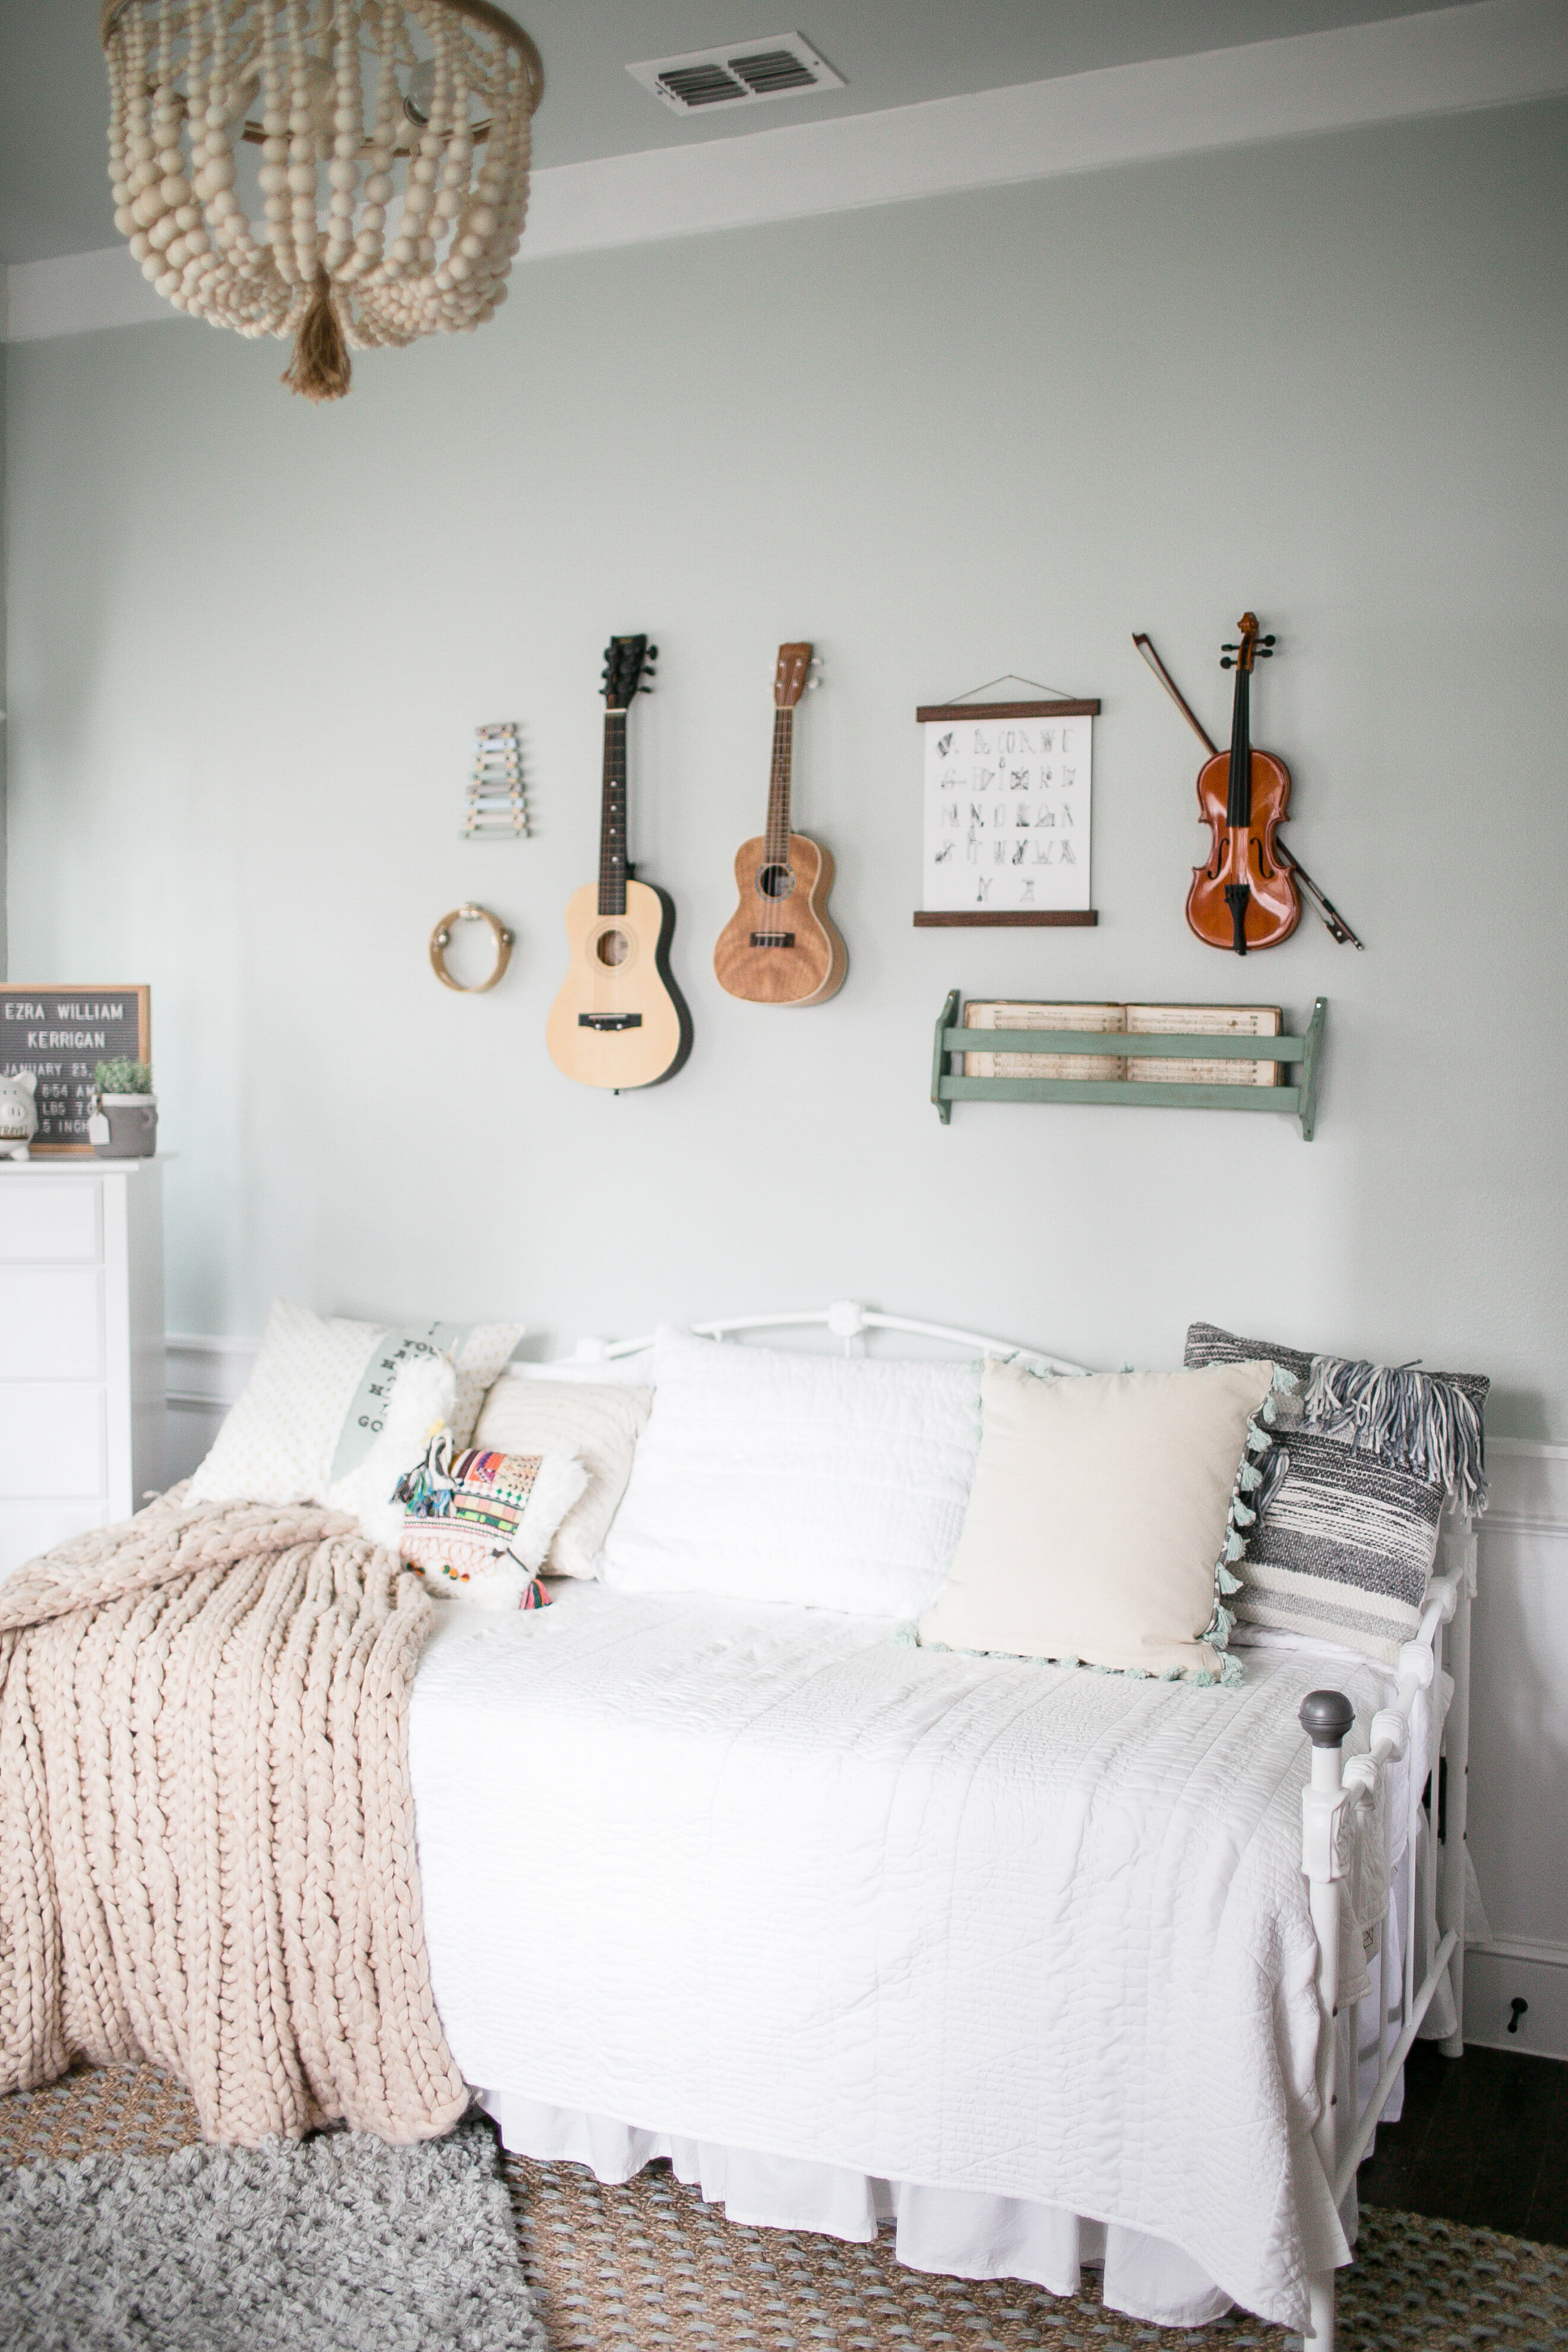 This neutral nursery inspired by music is very cozy and inviting. I love the detail in every corner of the room! Nursery inspiration over on motherhood blog, Lynzy & Co.